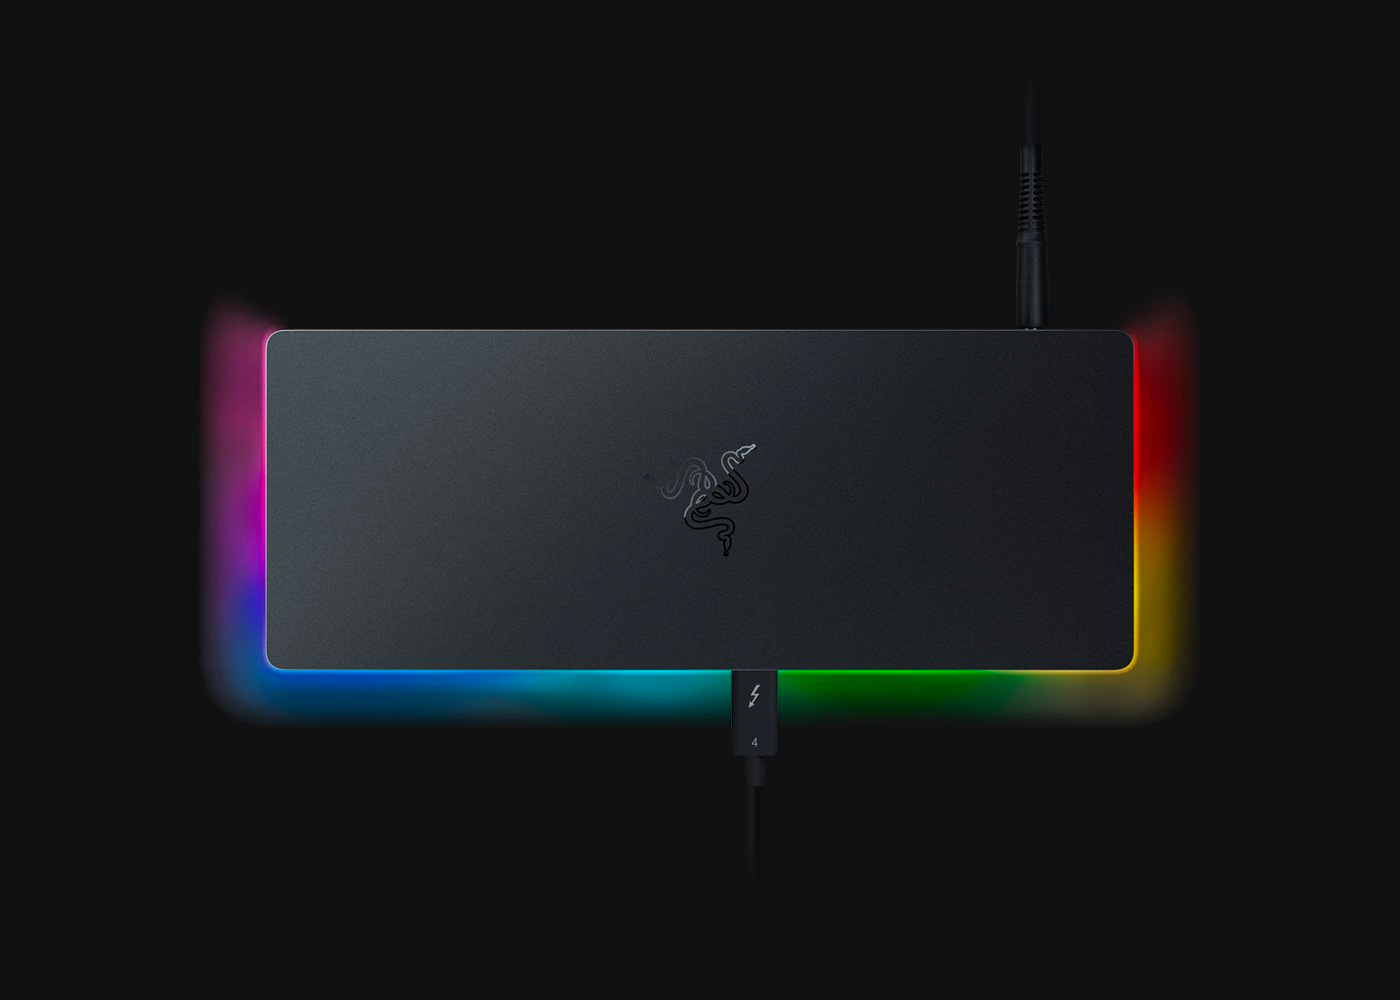 Razer Packed All the Ports & RGB into this Thunderbolt 4 Dock at werd.com